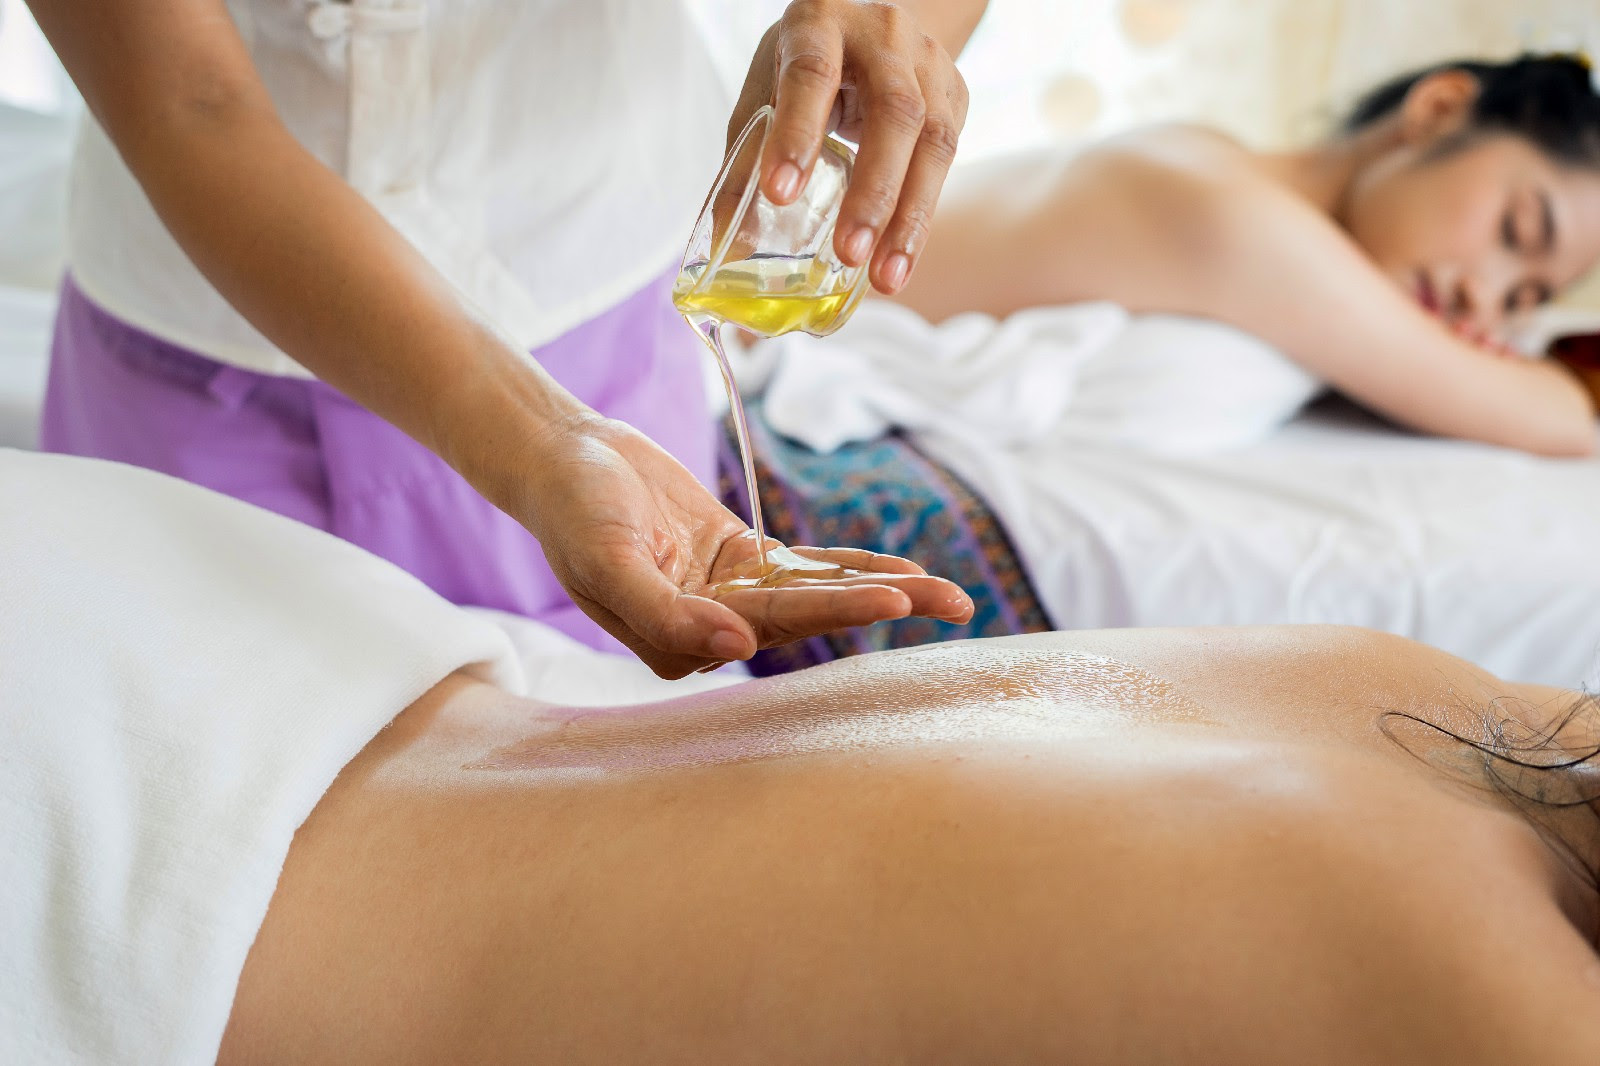 Two women lying face down about to get a massage. A massage therapist pouring oil onto his hand just above the back of one woman.